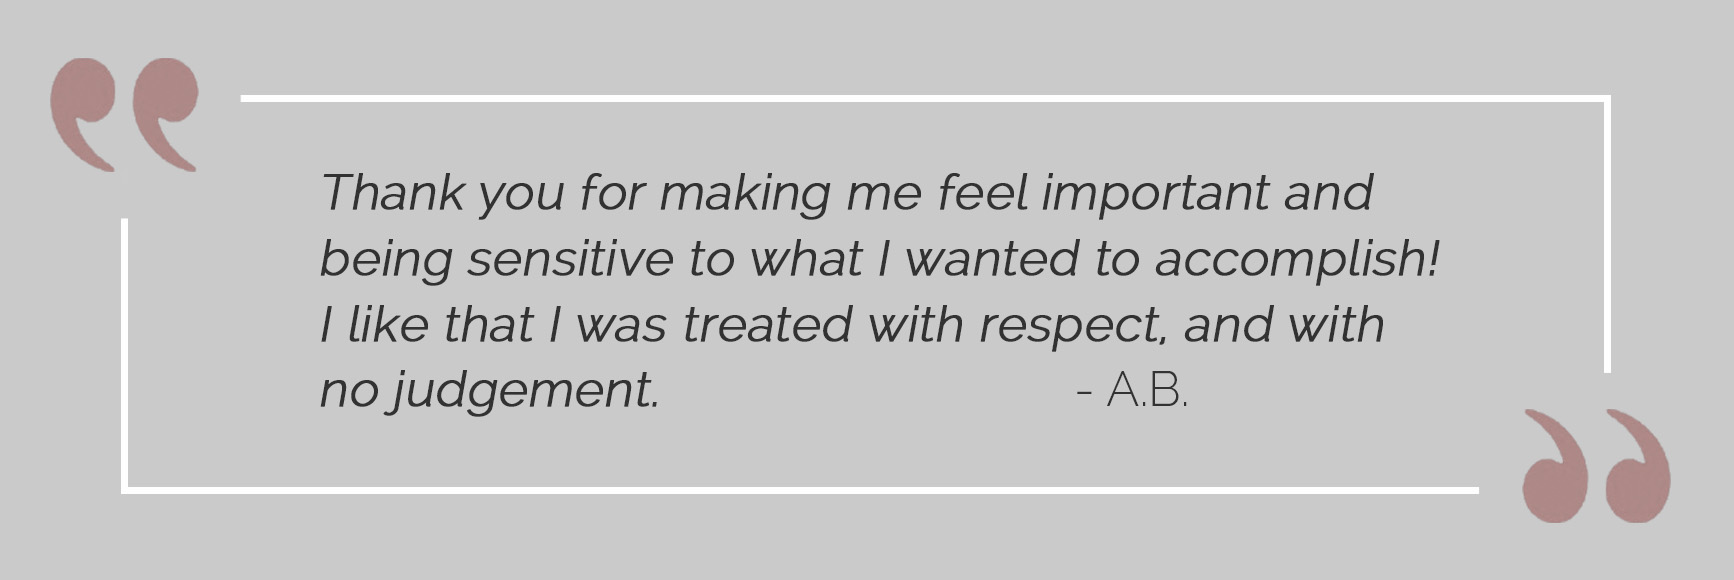 Plastic Surgery Innovations testimonial: 'Thank you for making me feel important and being sensitive to what I wanted to accomplish!  I like that I was treated with respect, and with no judgement.  -A.B.'